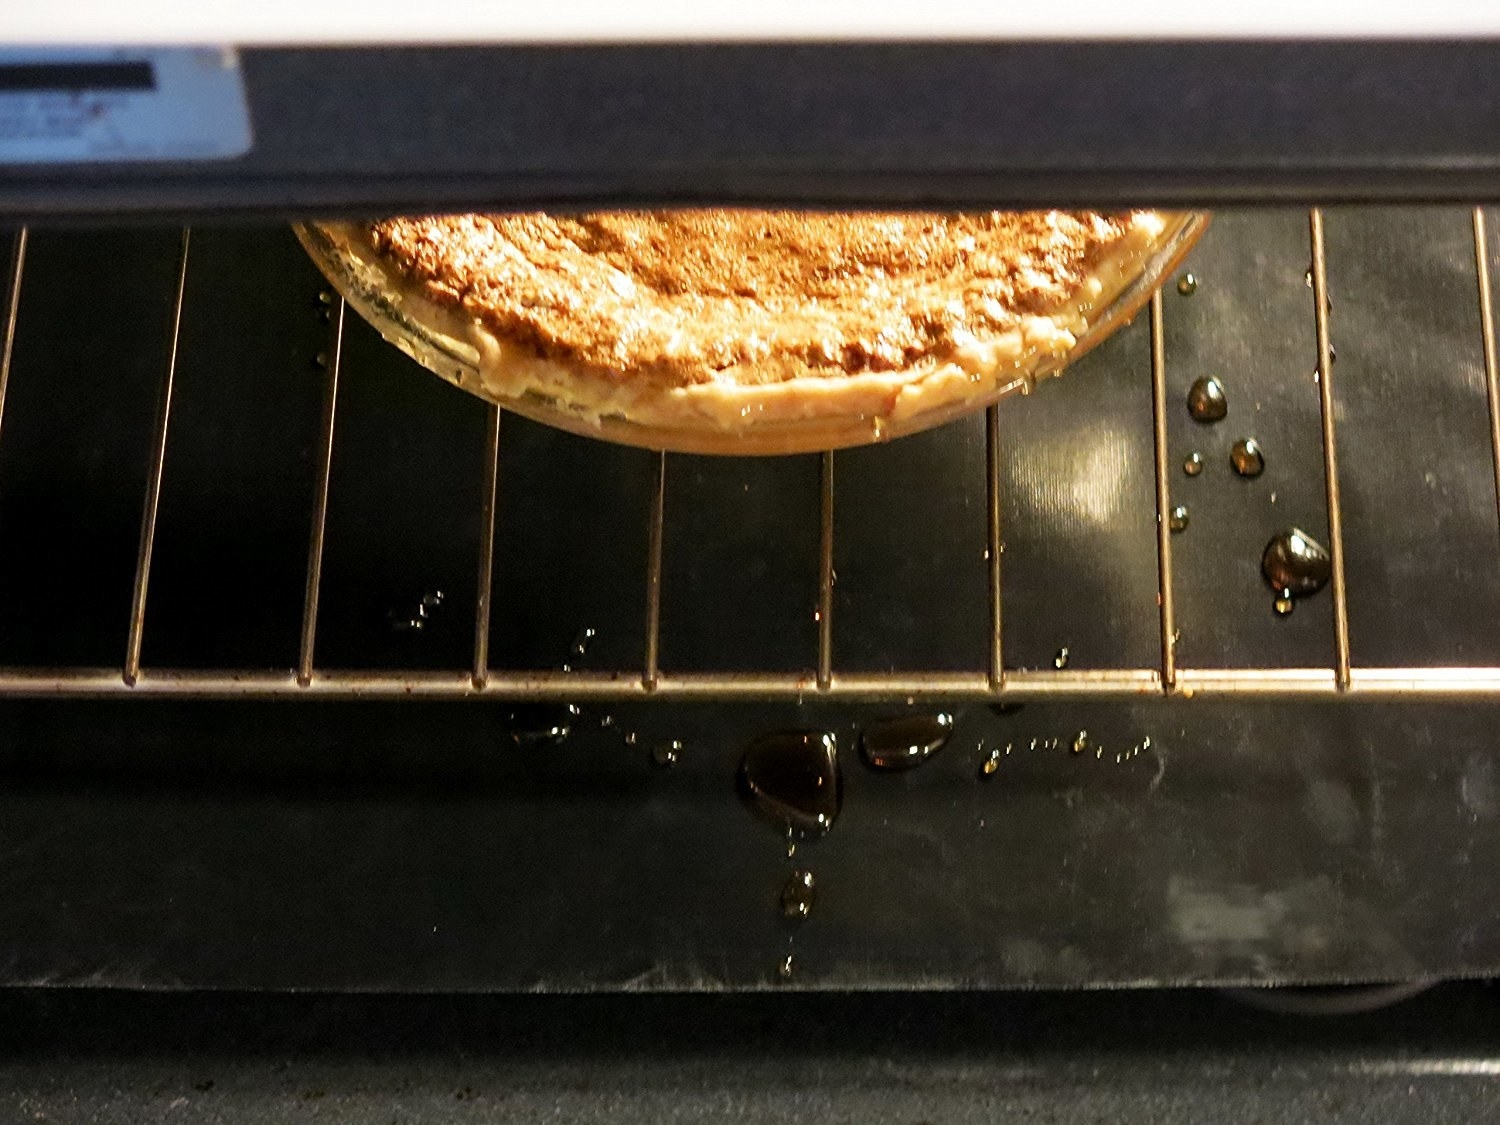 view of oven with grease from pizza dripping onto the liner